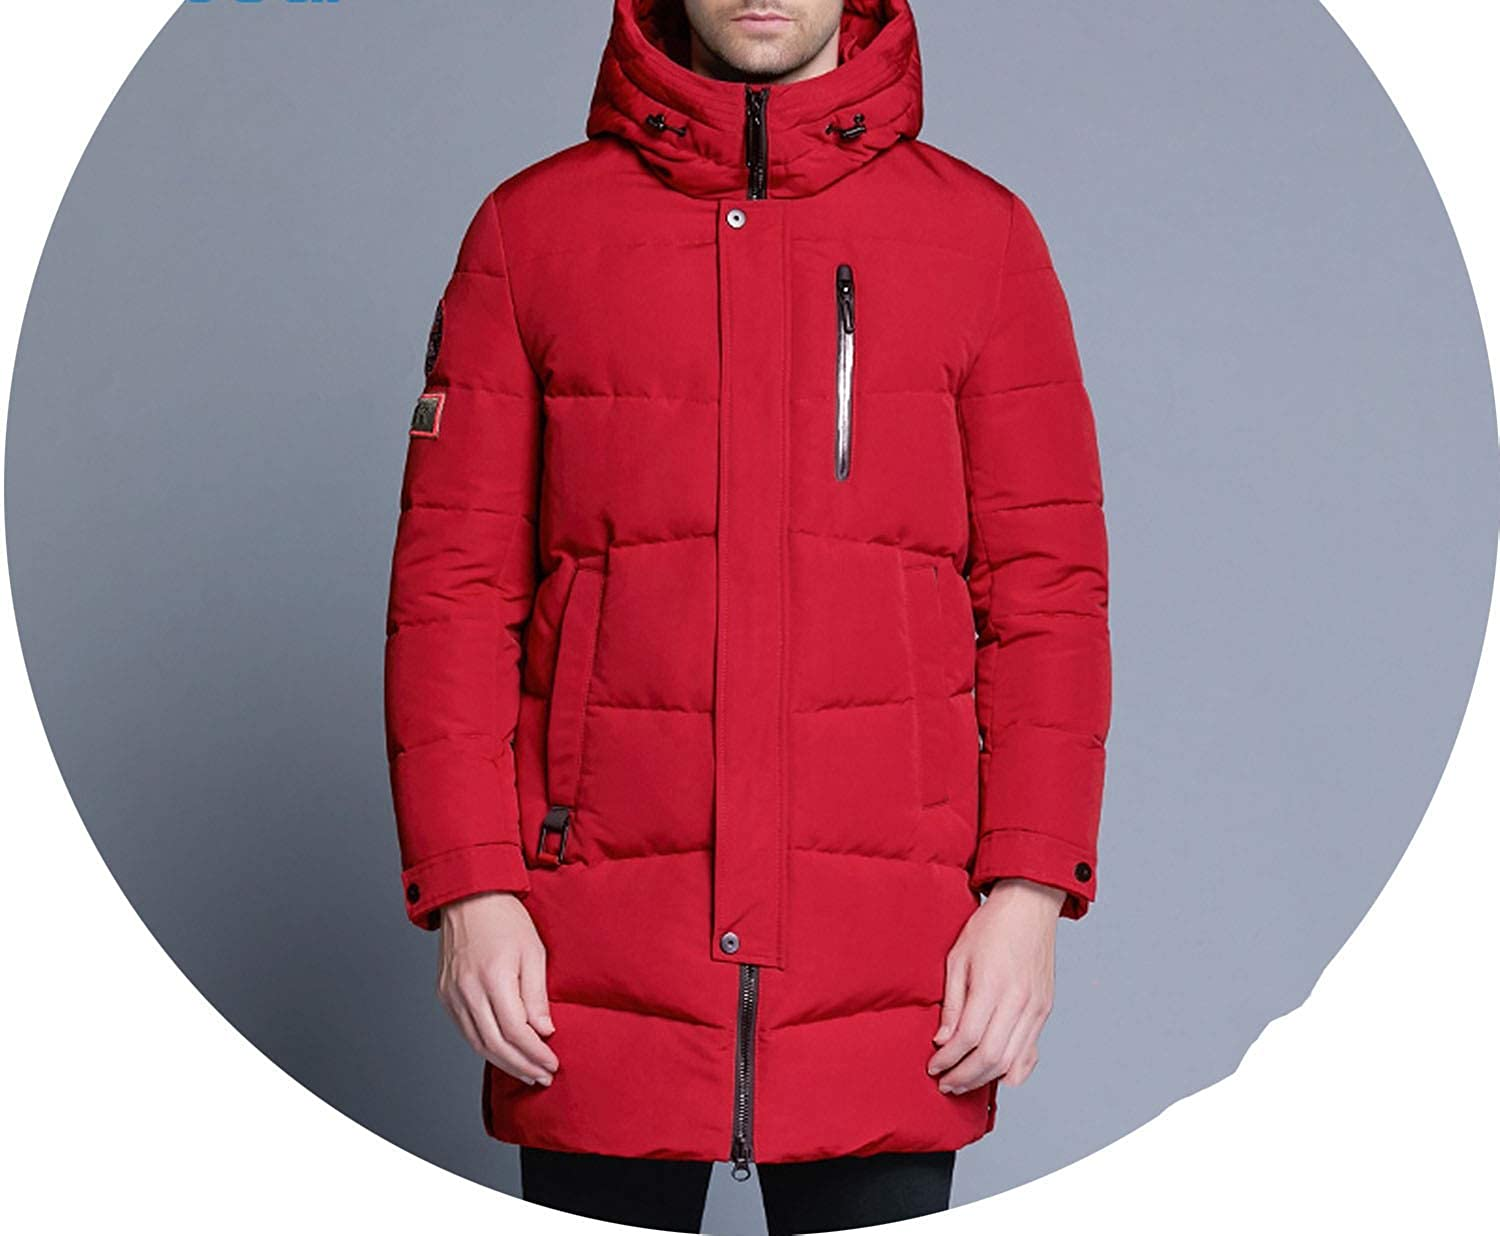 Amazon.com: Winter Jacket Men Coat Slim Sportswear Outwear ...